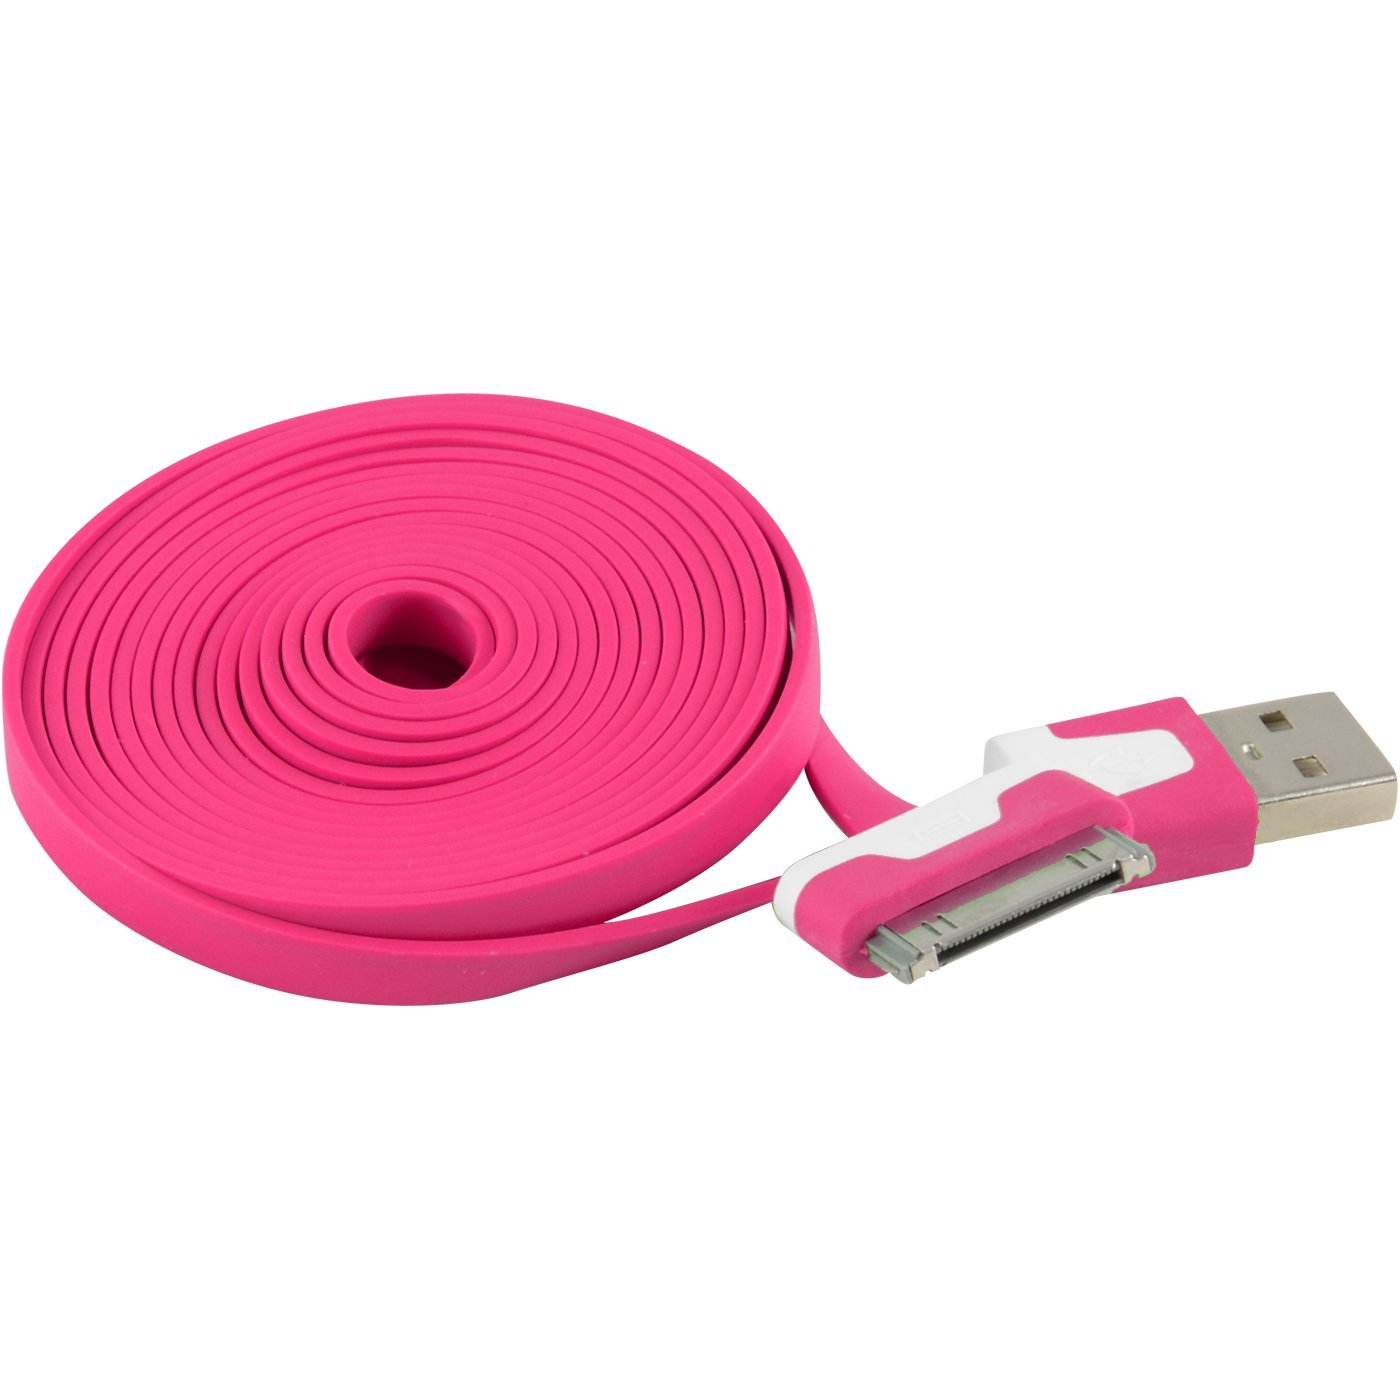 Extra Long 6 FT USB Data Sync Charging Cable for Apple iPhone 4, 4G, 4S, 3, 3G, 3GS; iPod Touch 4G, 3G (Hot Pink)